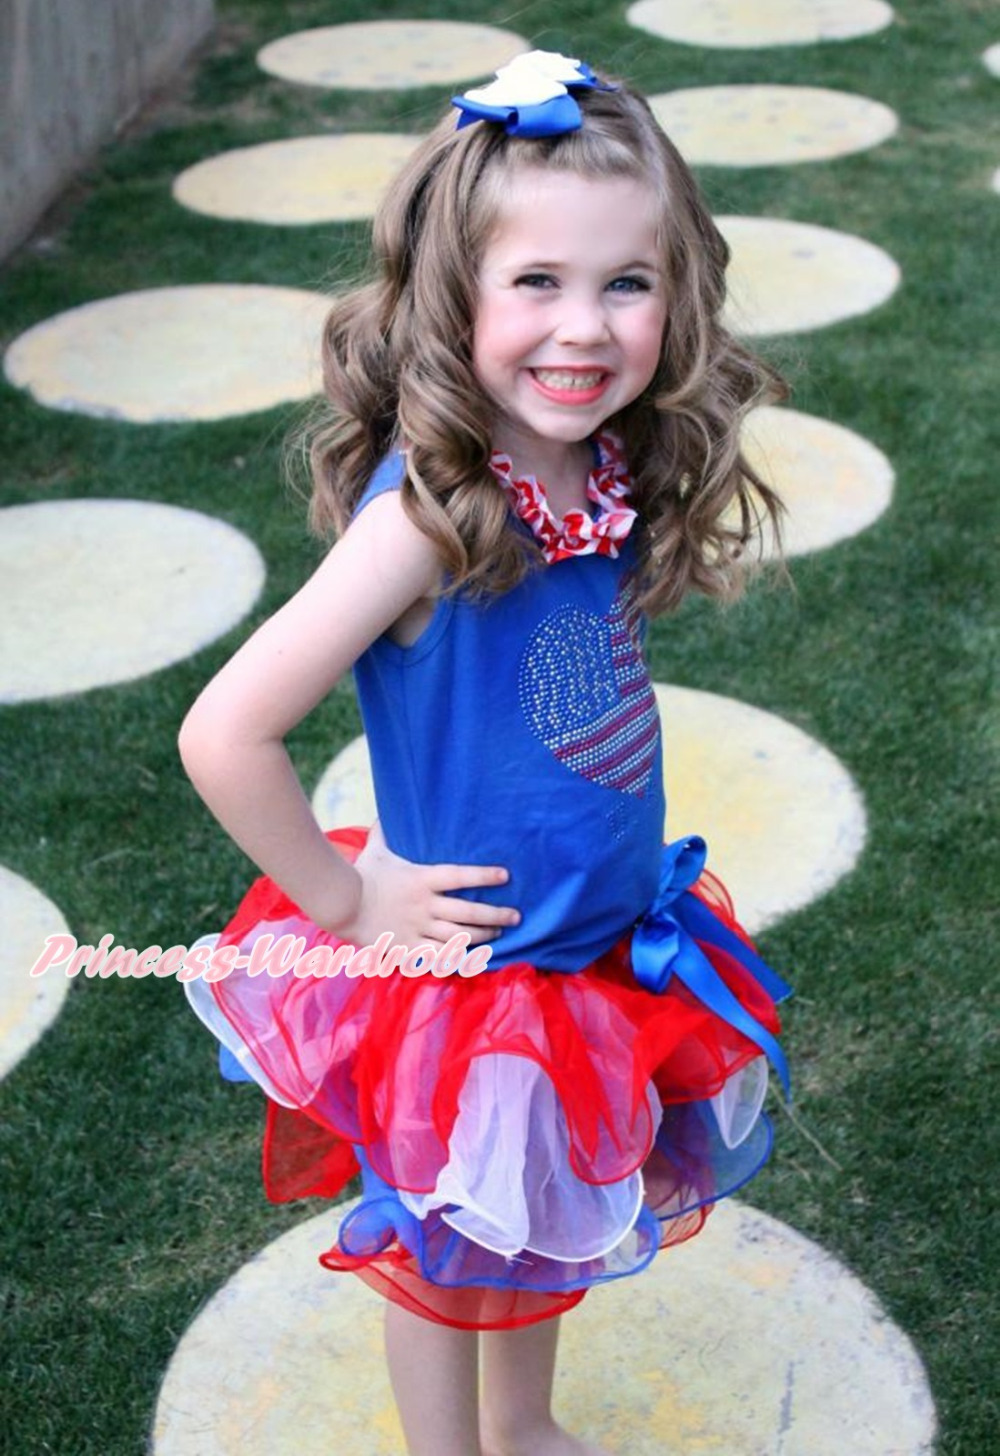 4th July Rhinestone USA Heart Blue Top Girl Red White Blue Petal Skirt Set NB-8Y MAMH246 4th july america usa heart girls royal blue top bling sequins baby skirt 3 12m